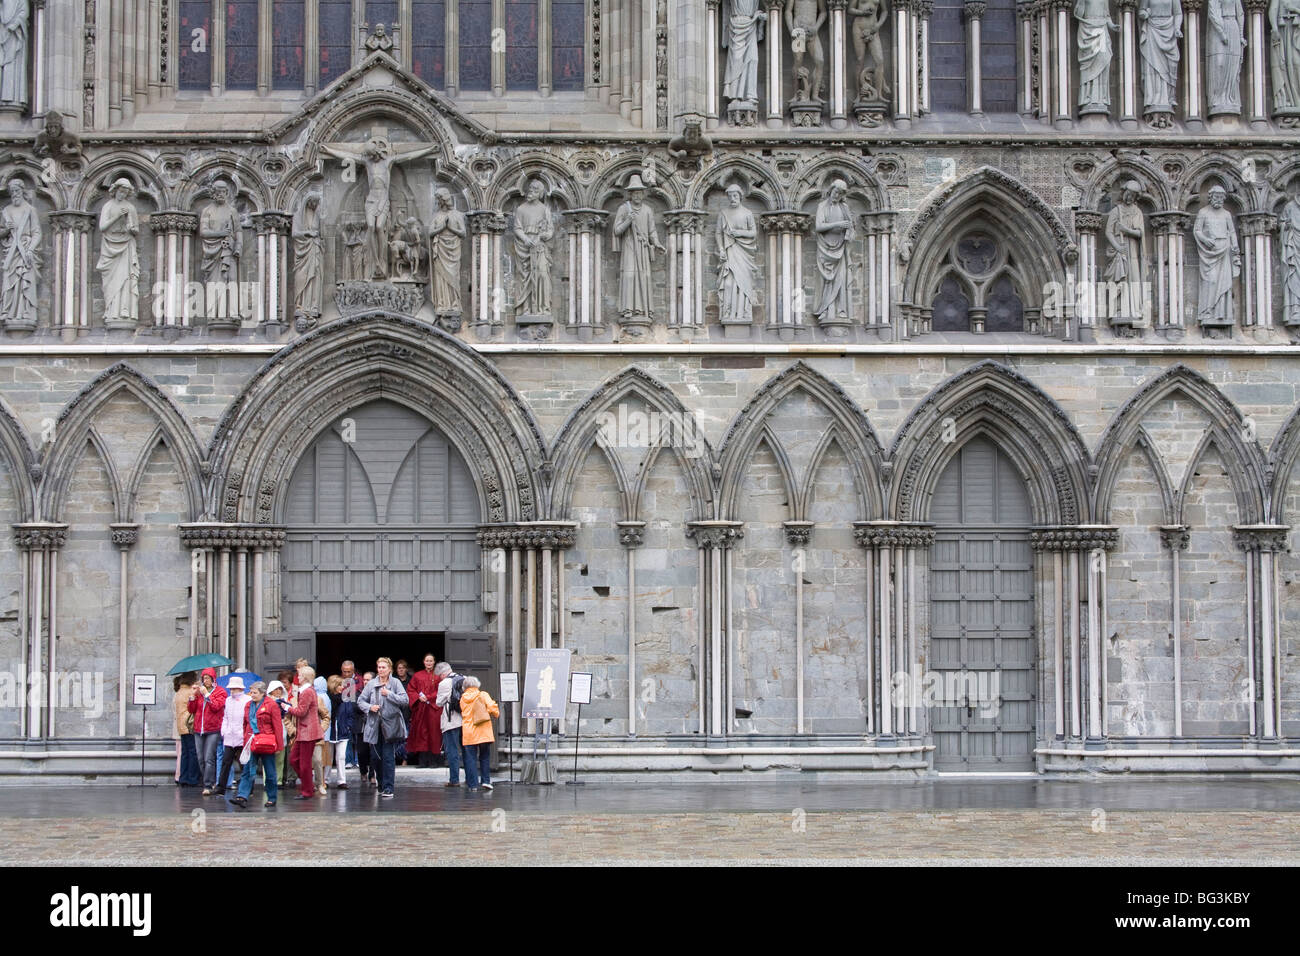 Facade of Nidaros Cathedral, Trondheim City, Nord-Trondelag Region, Norway, Scandinavia, Europe - Stock Image